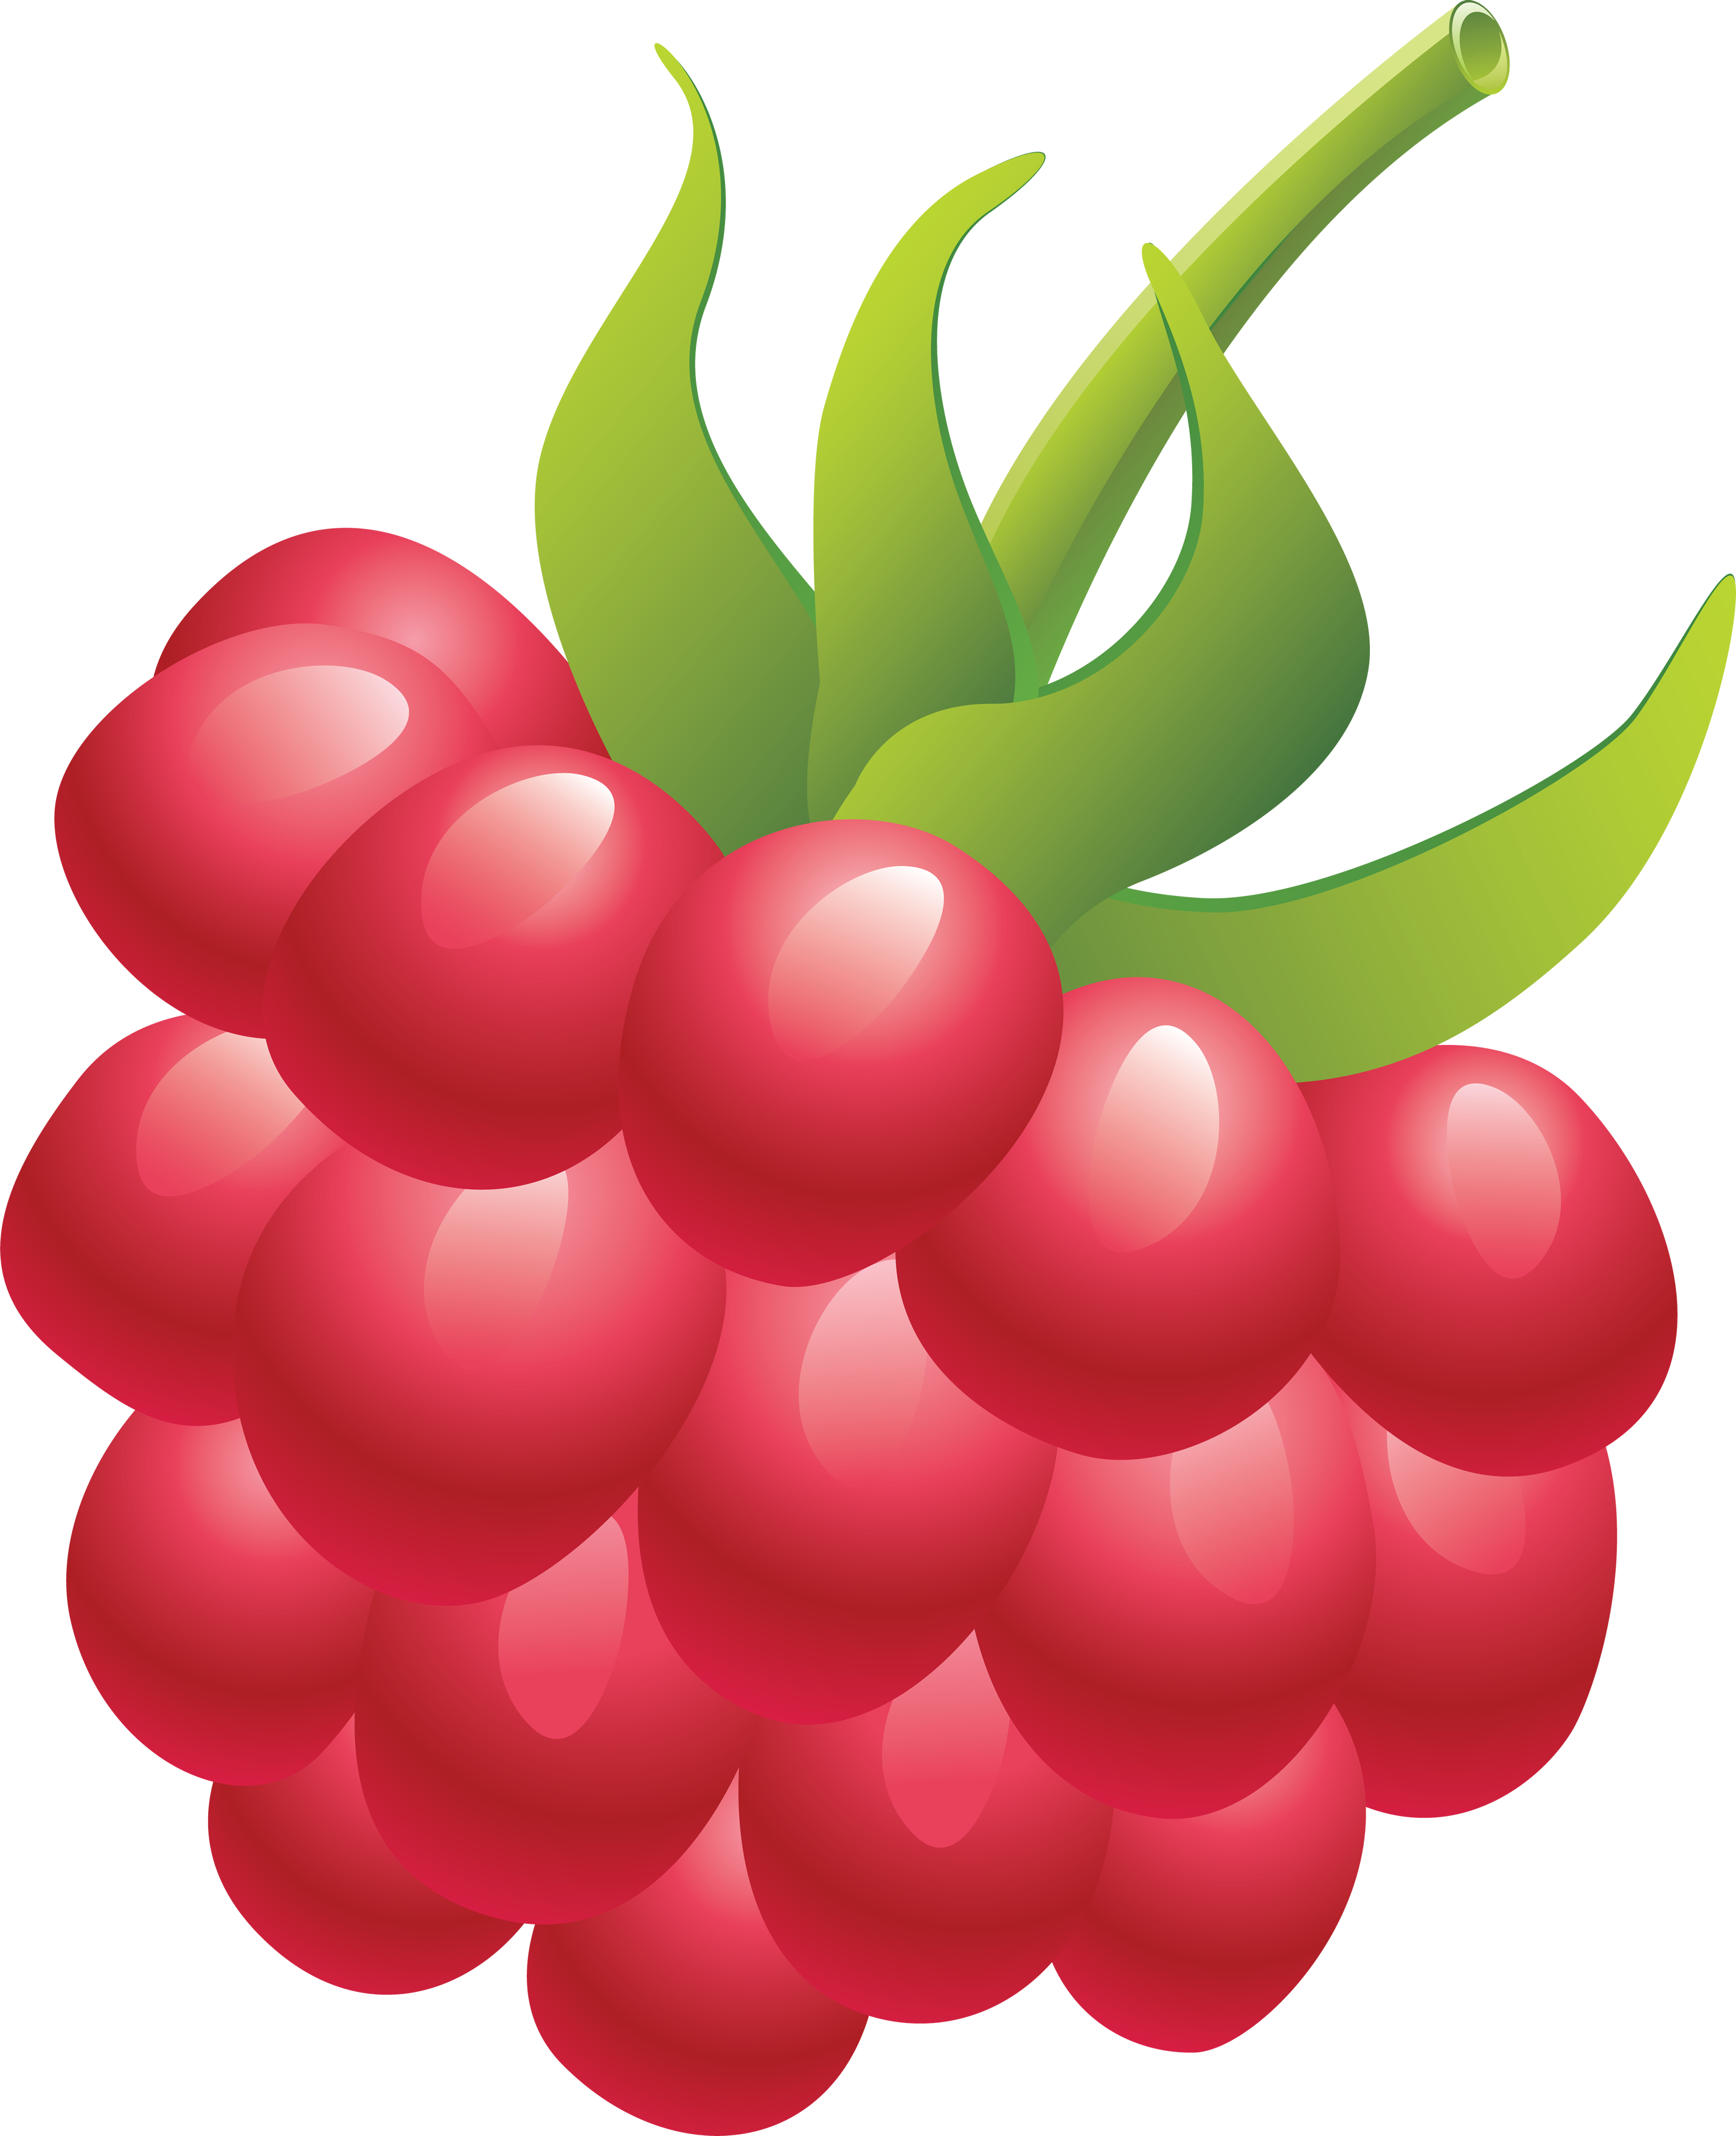 Raspberry clipart red fruit #8